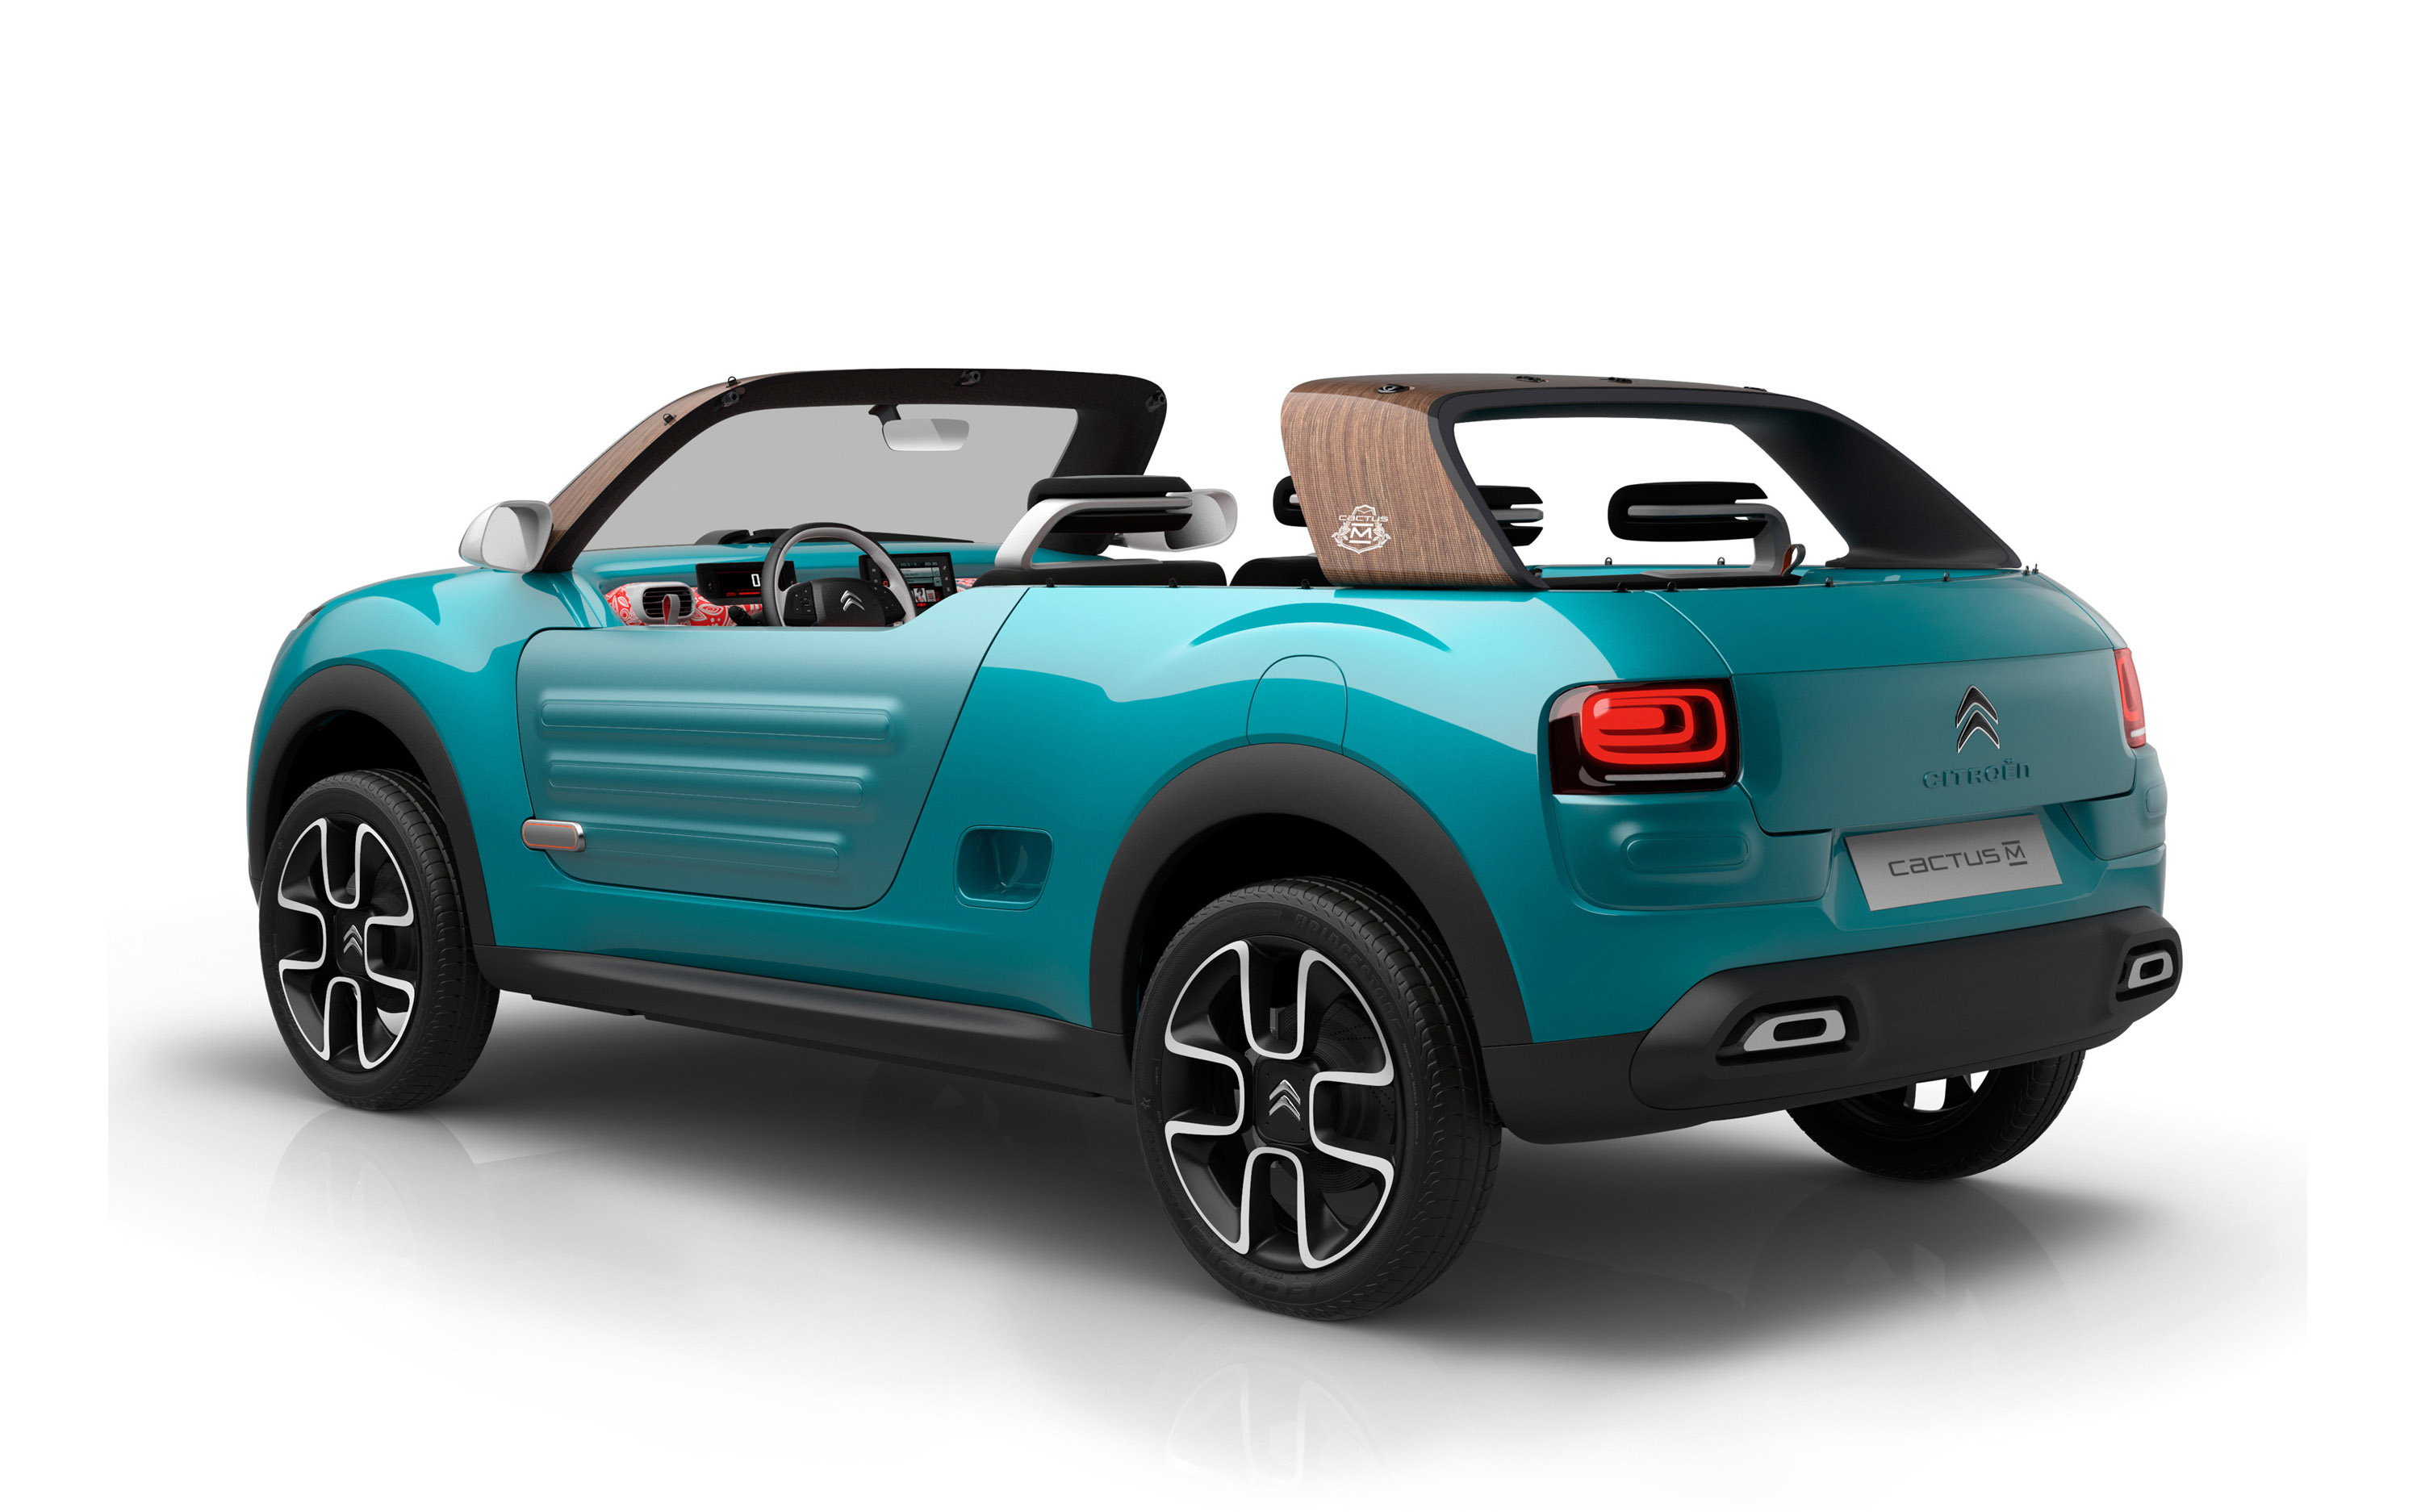 citroen cactus m concept offers bold style and interesting design approach. Black Bedroom Furniture Sets. Home Design Ideas